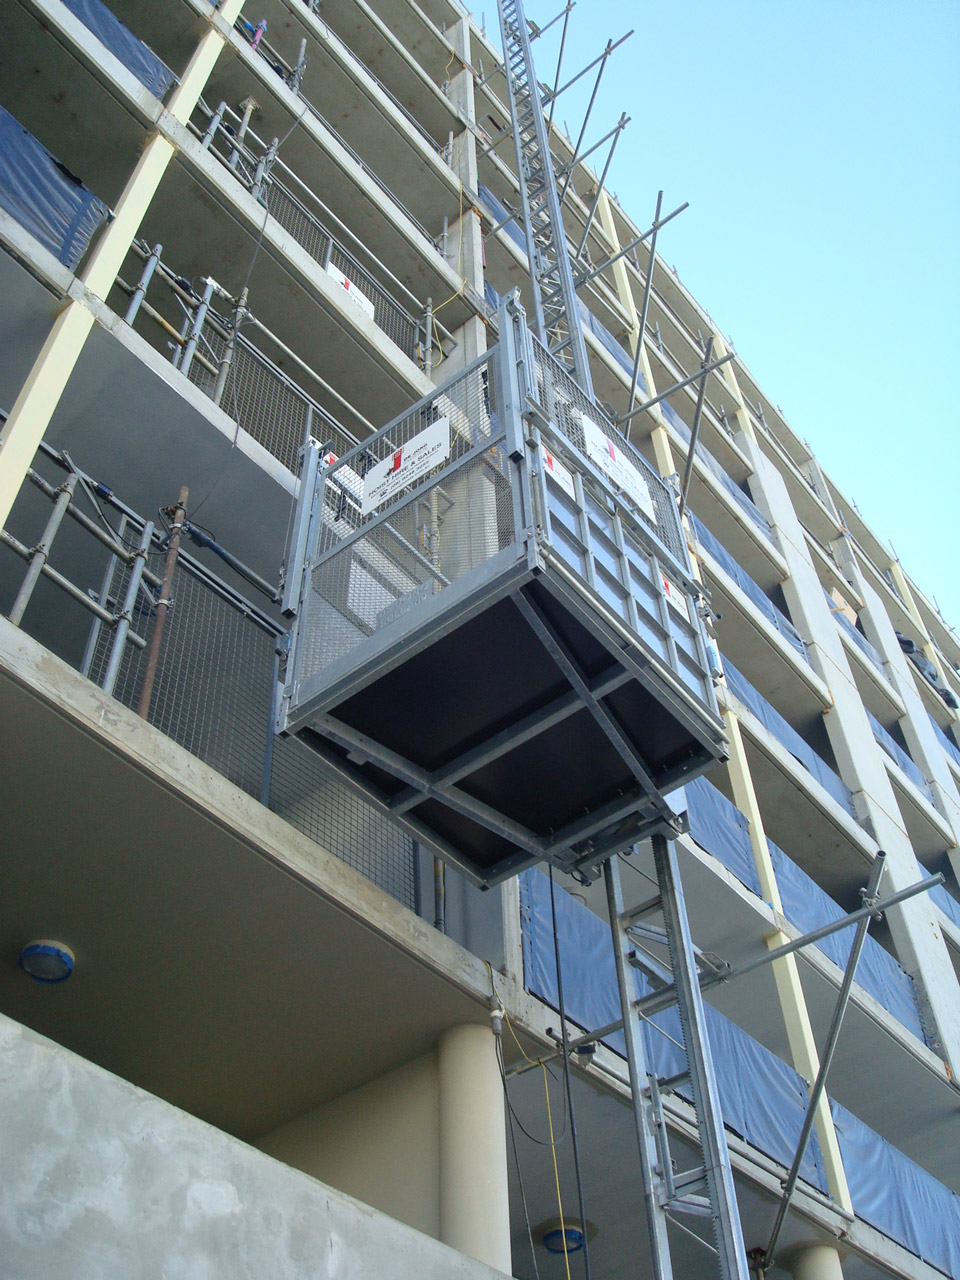 Source: http://www.dejonghoists.com.au/construction-hoists/material-hoists/at850-850kg/